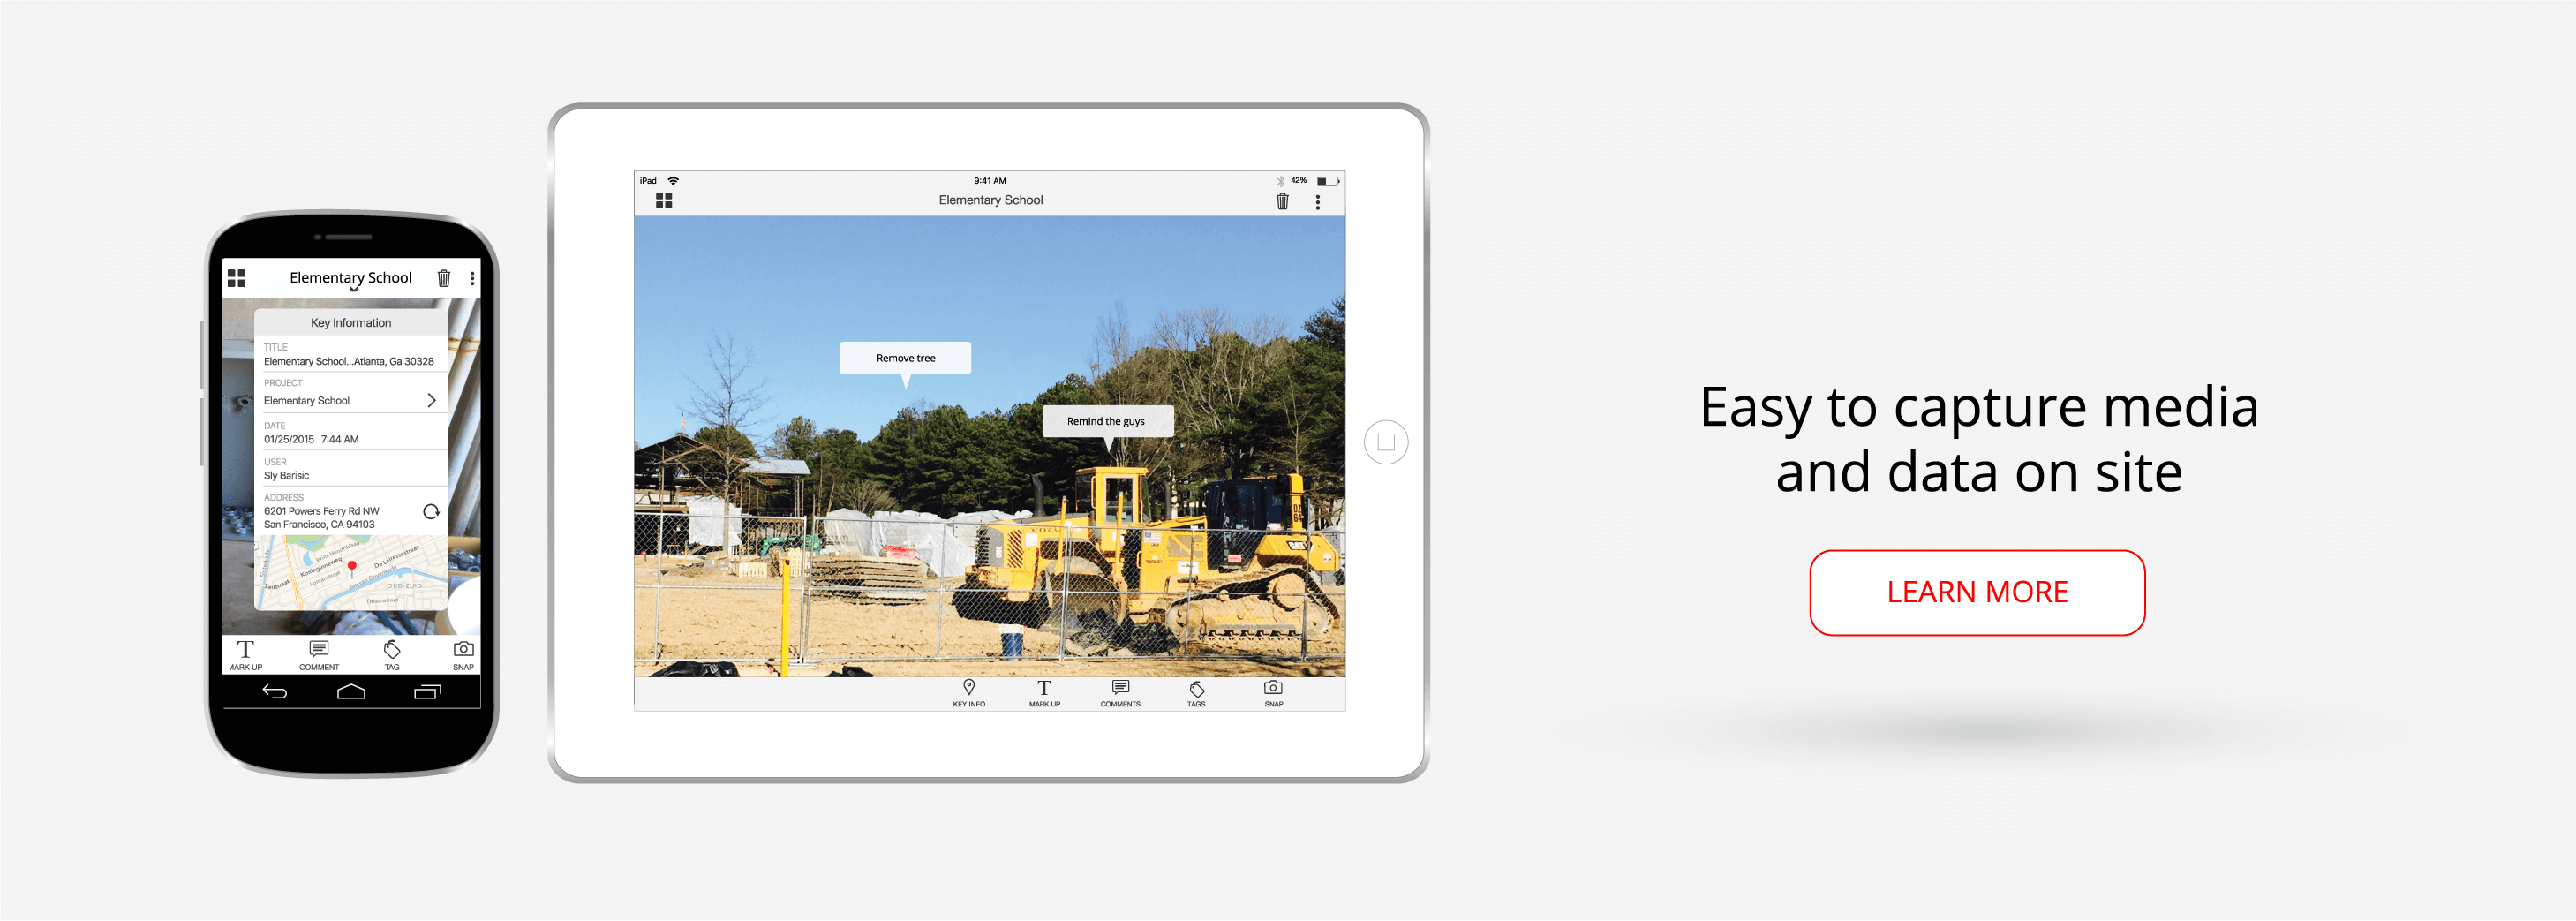 Easy to capture media and data on site